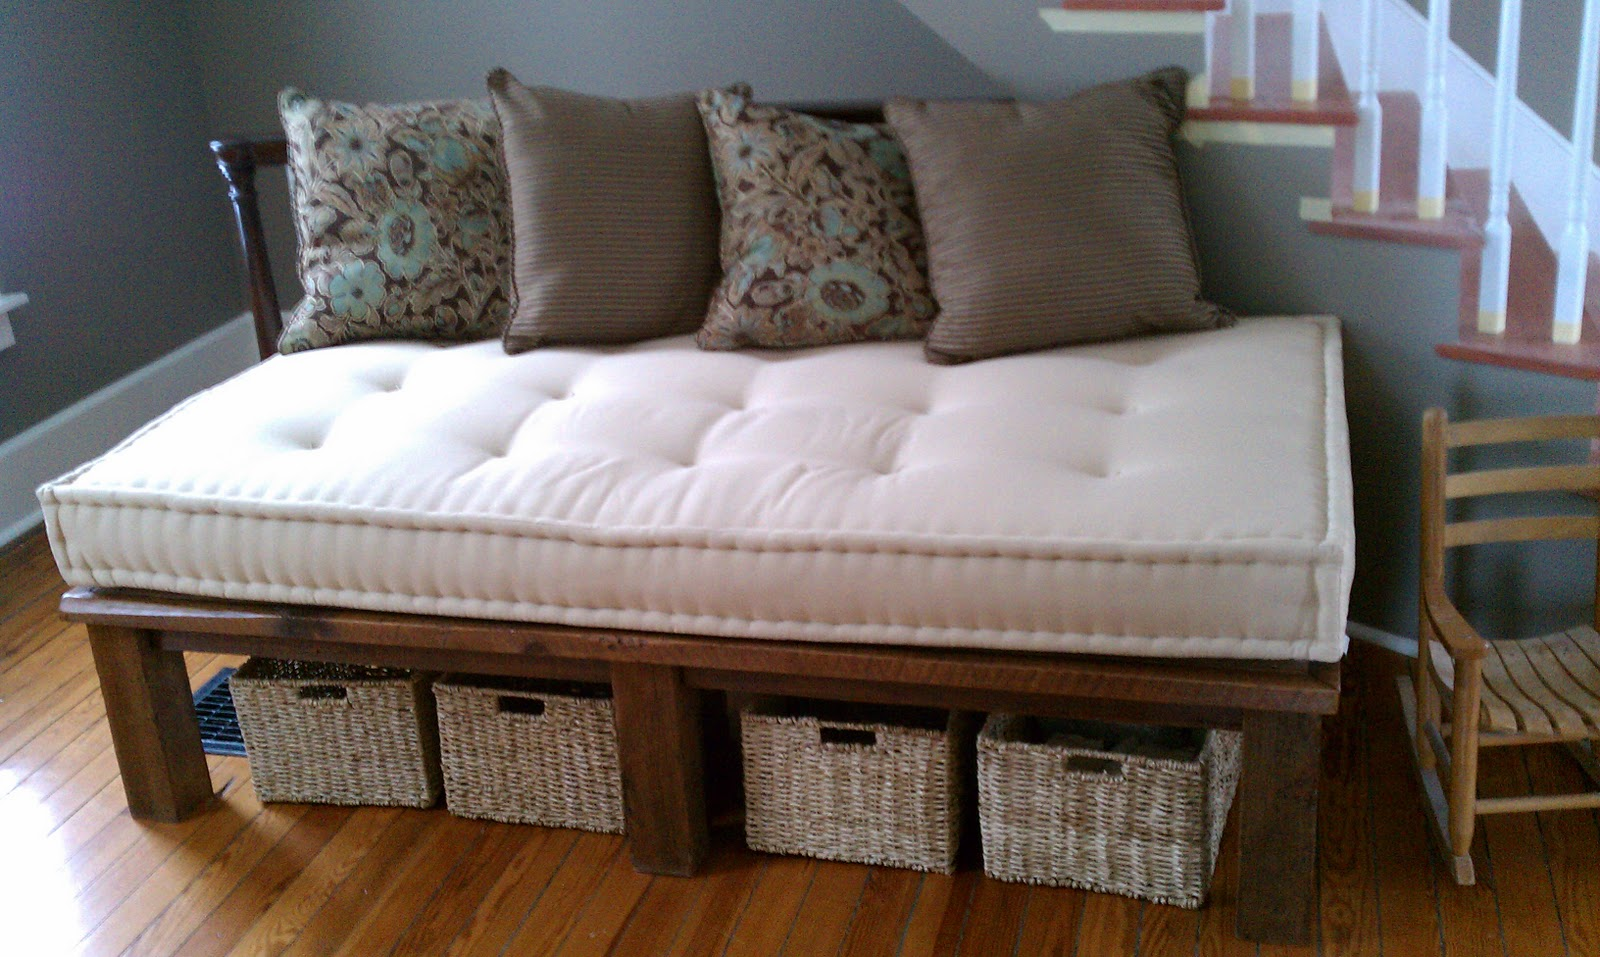 Futon Frame To Match The Coffee Table